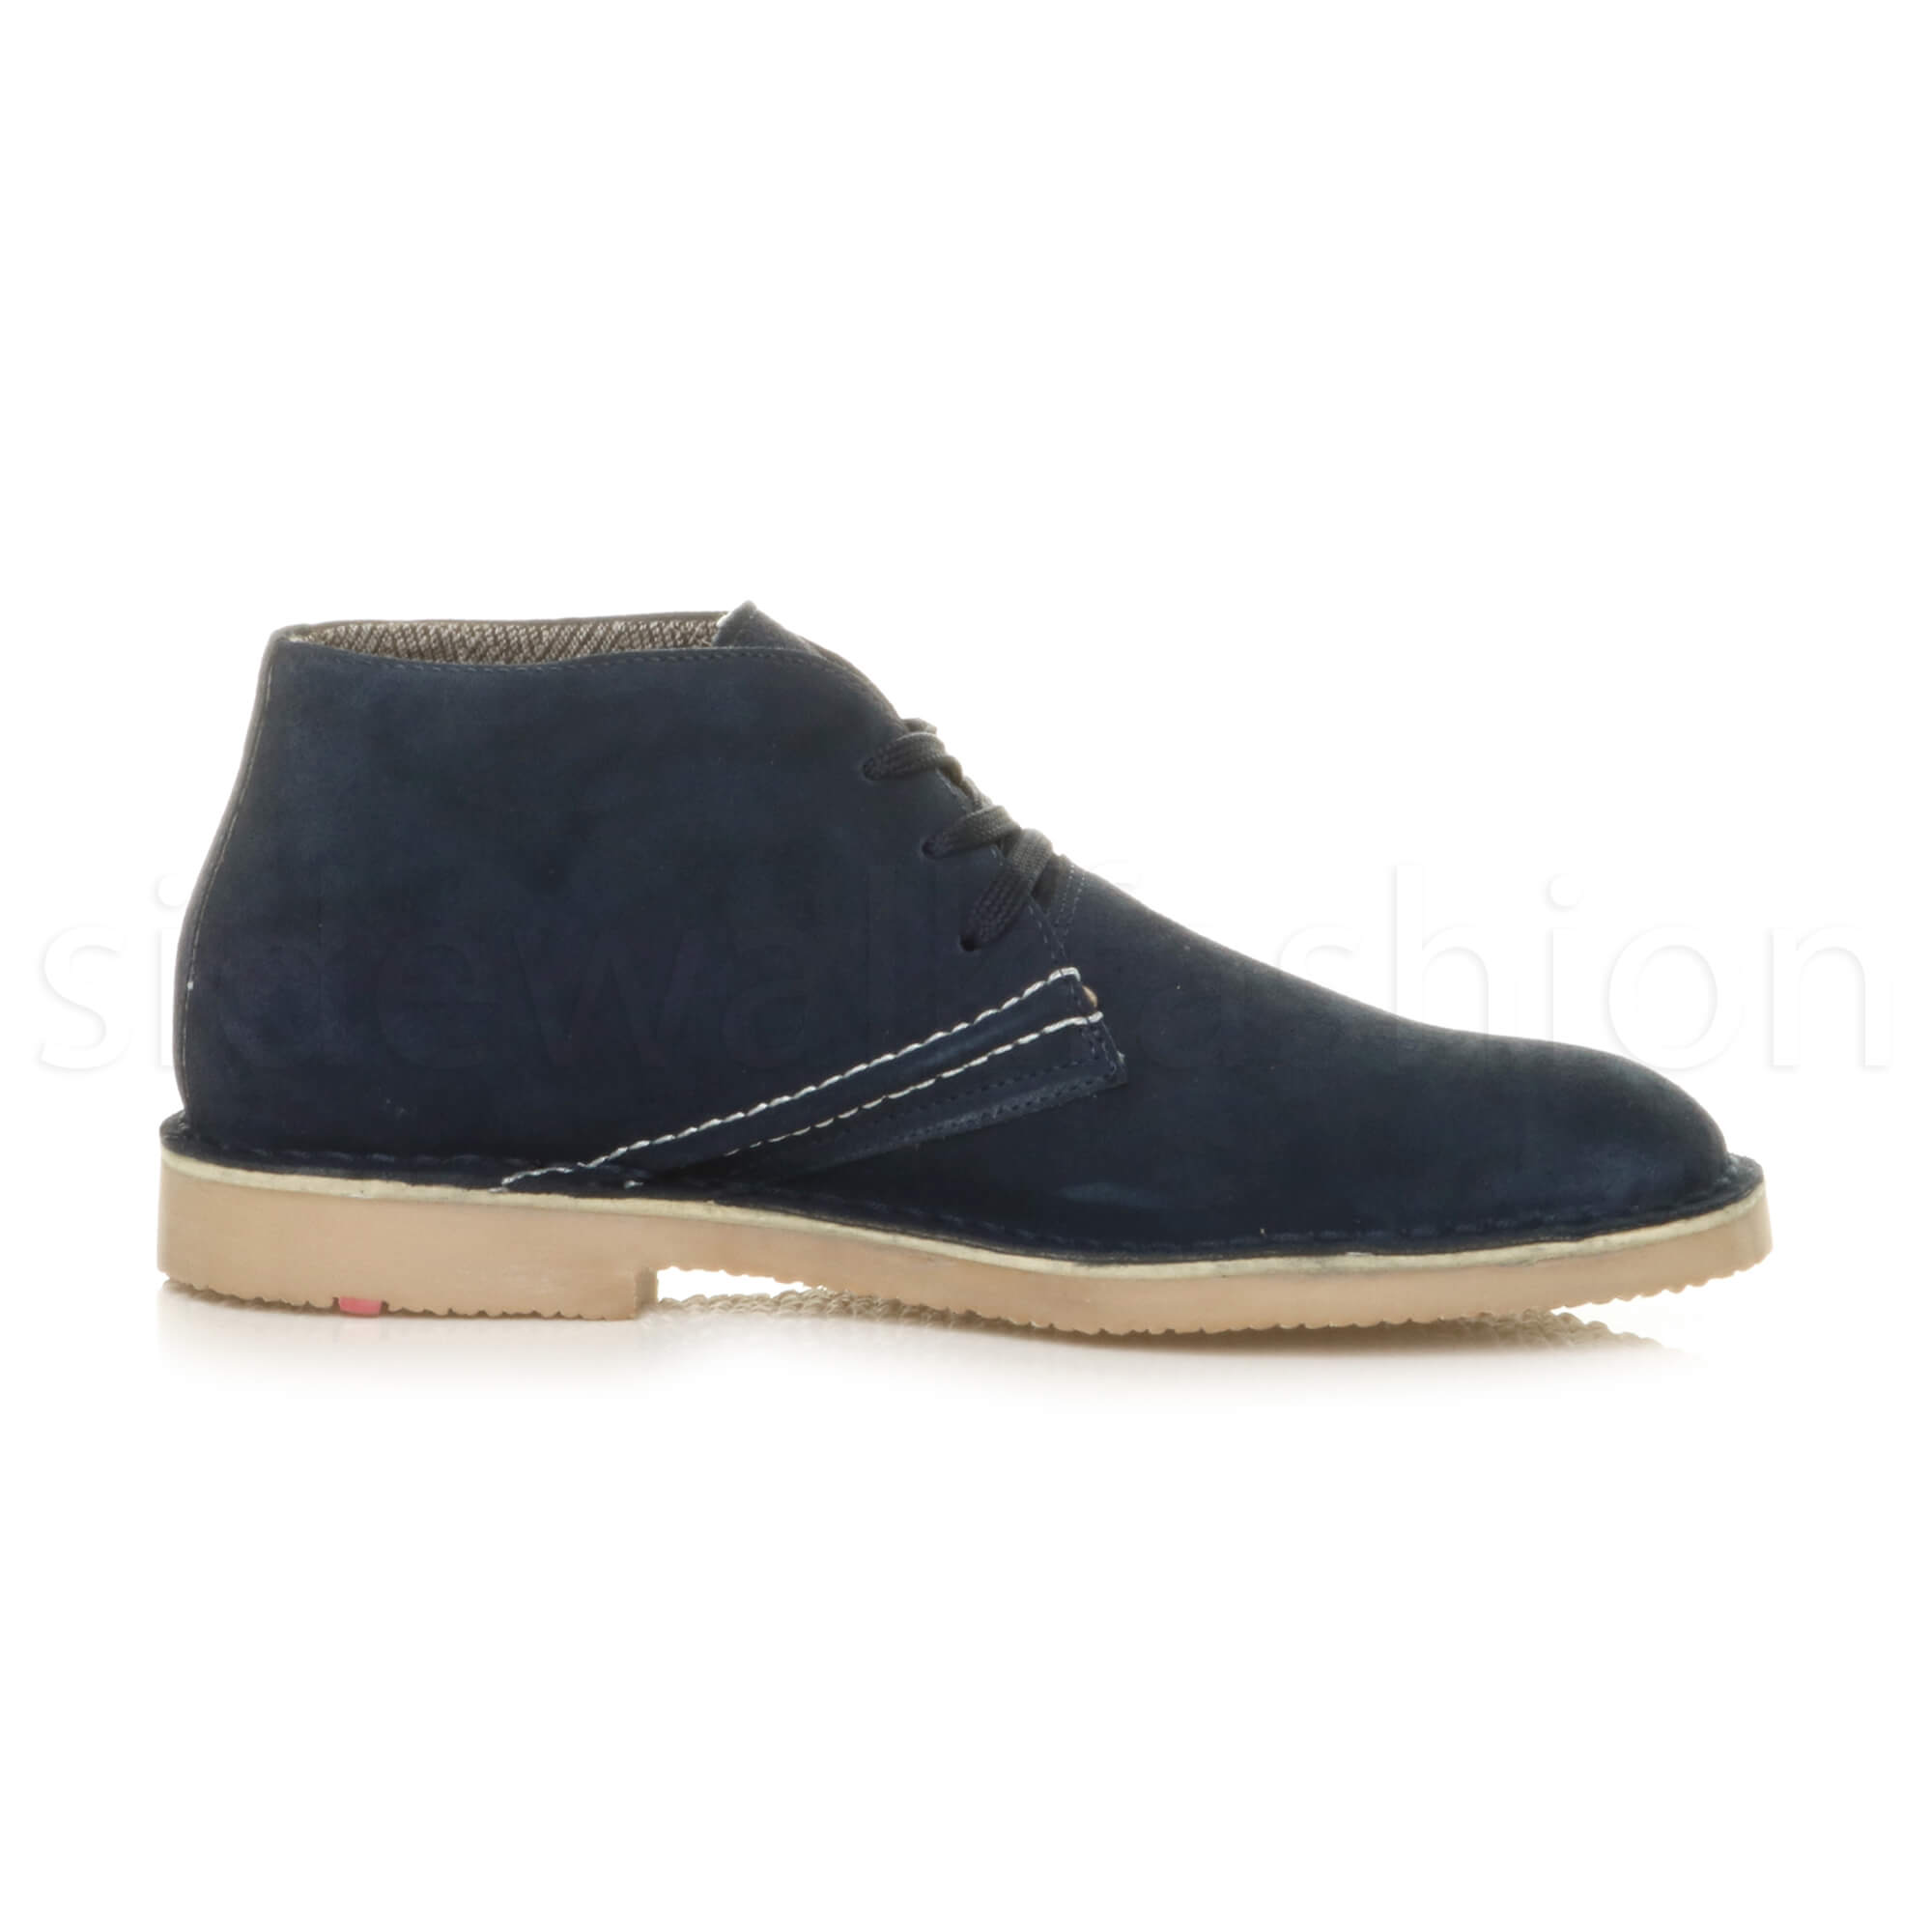 Mens-lace-up-rubber-sole-suede-ankle-chukka-desert-boots-classic-shoes-size thumbnail 26